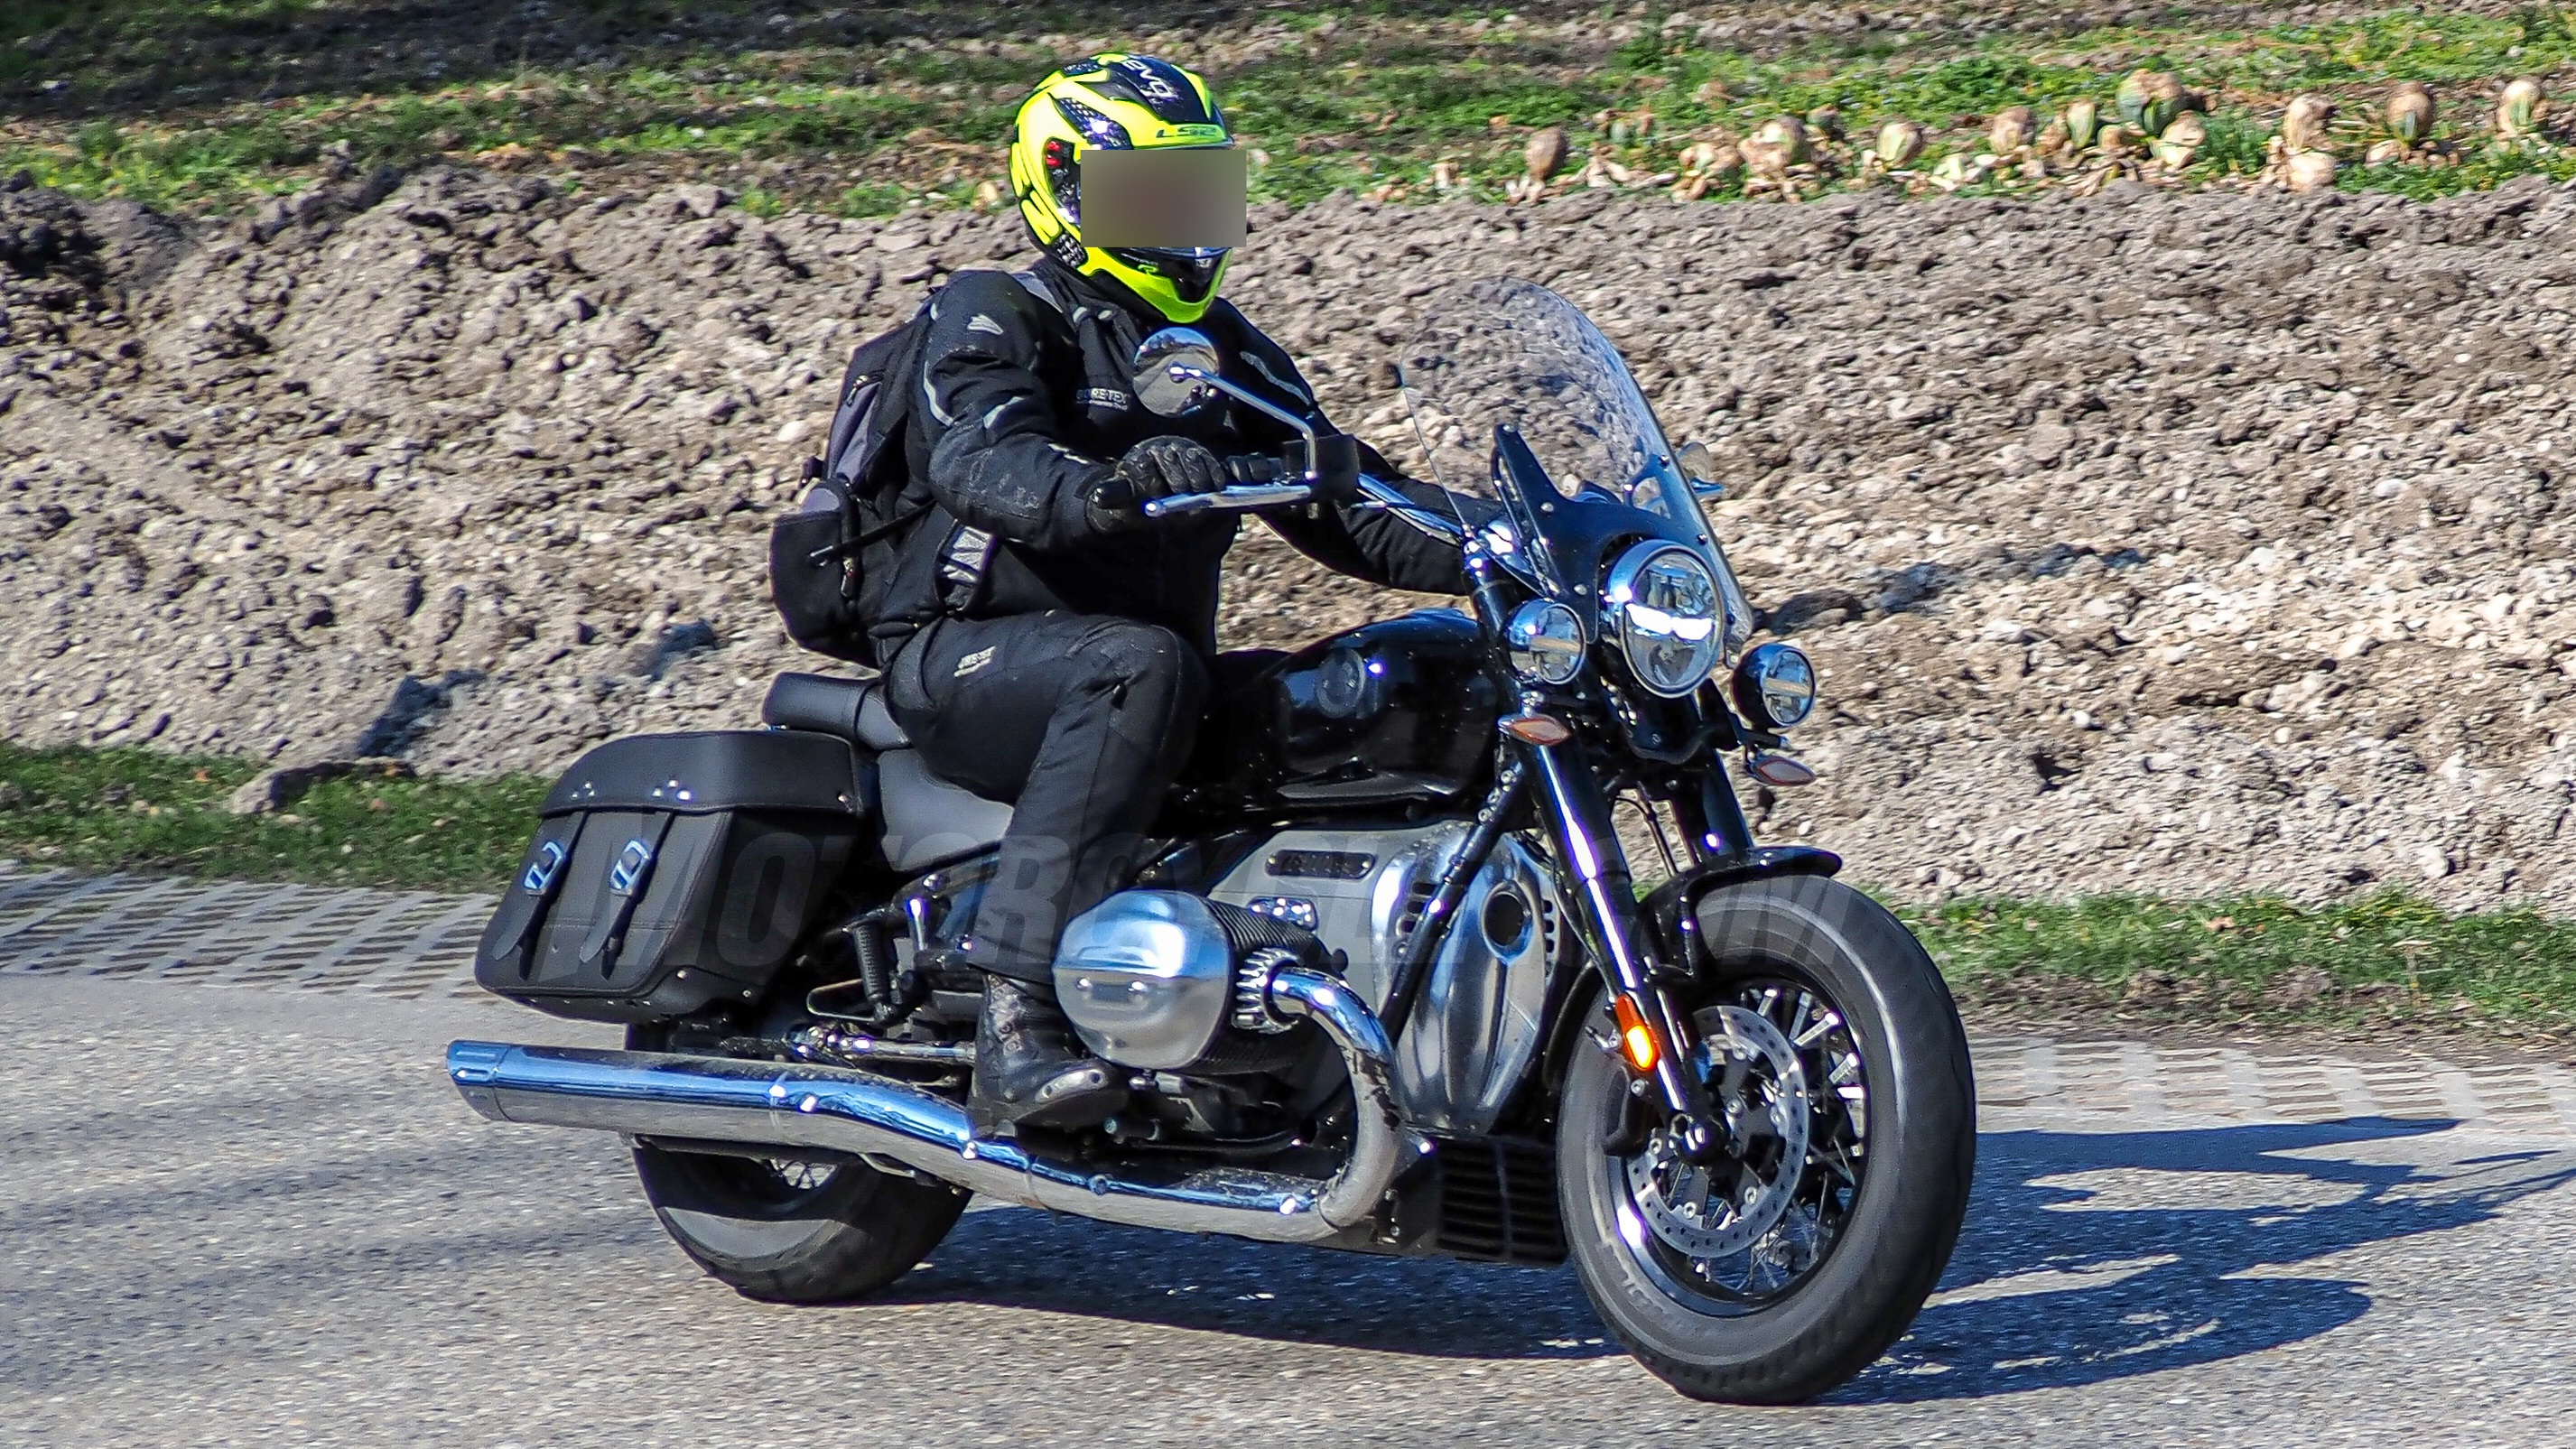 2021 Bmw R18 Touring Version Spied Motorcycle Com